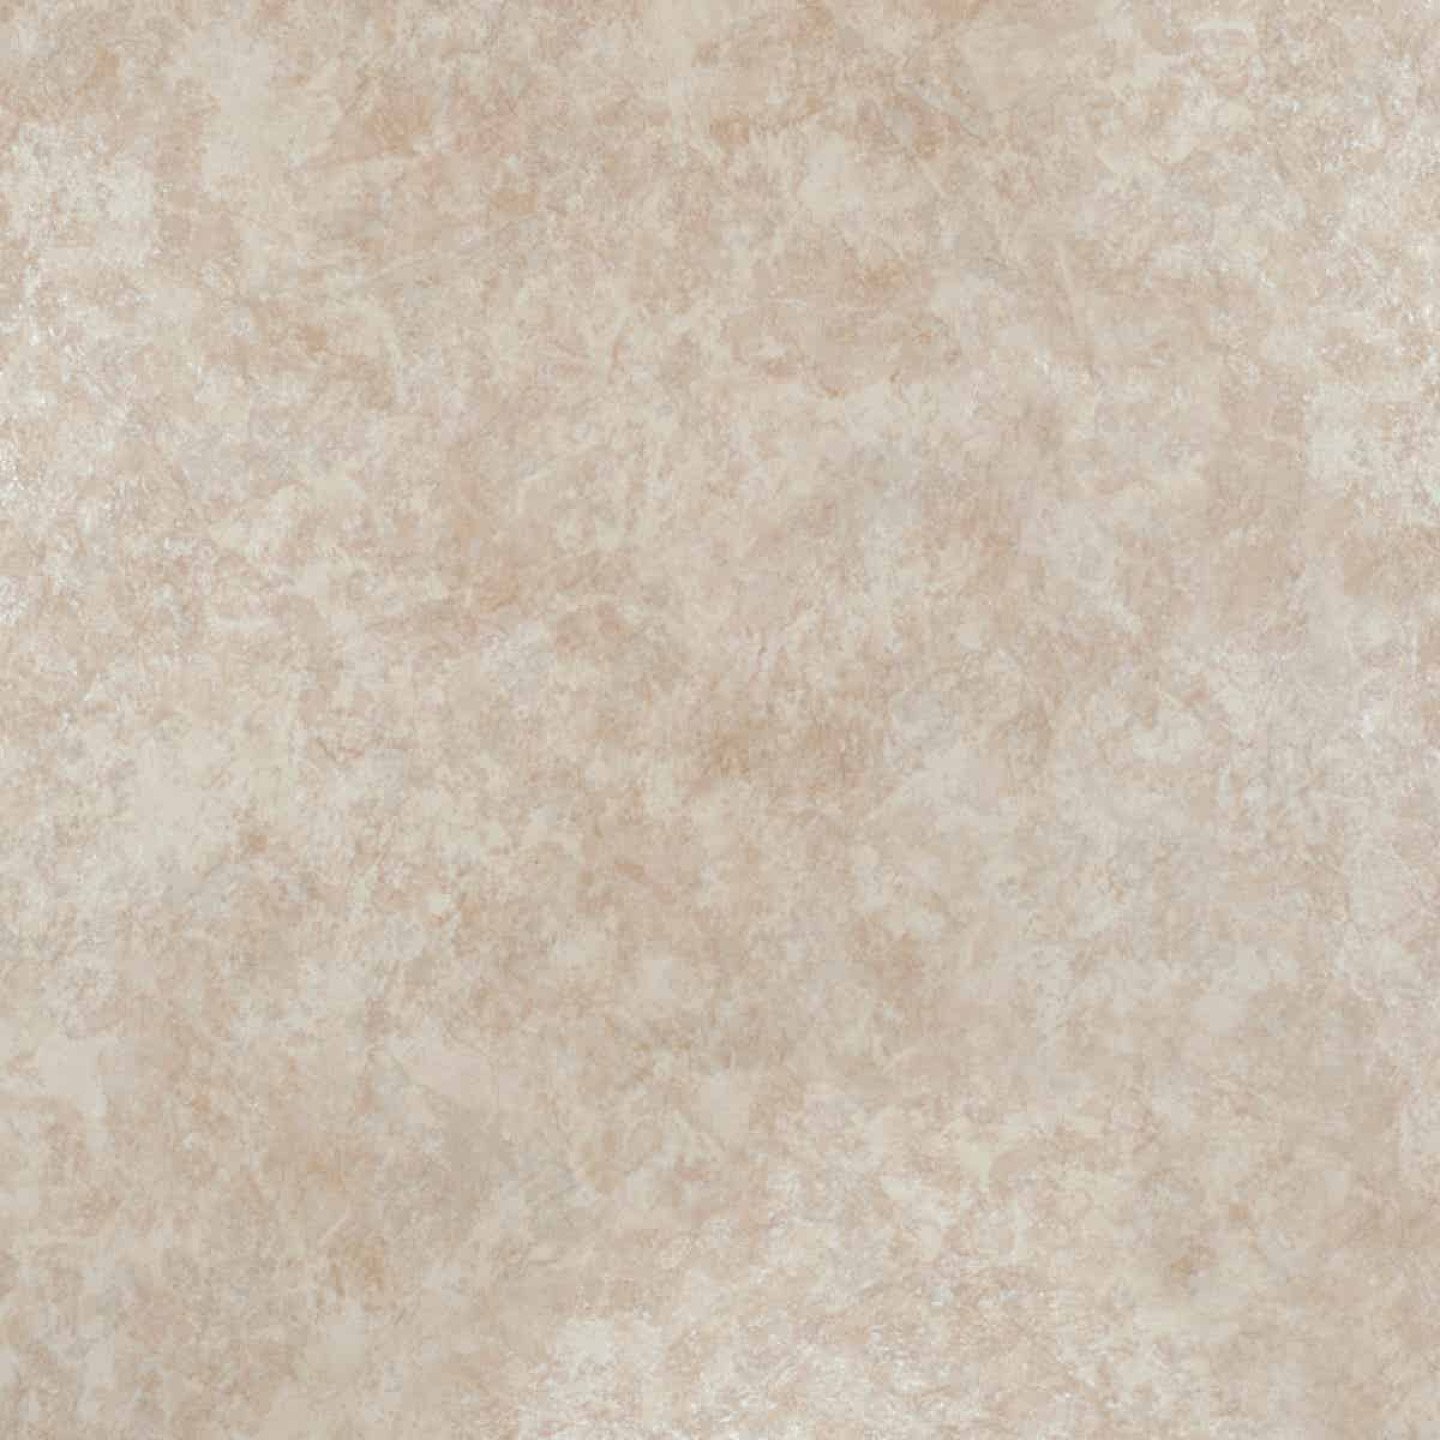 Global Product Sourcing Trend Textures 4 Ft. x 8 Ft. x 2.7 mm Bordeaux Beige Wall Paneling Image 1